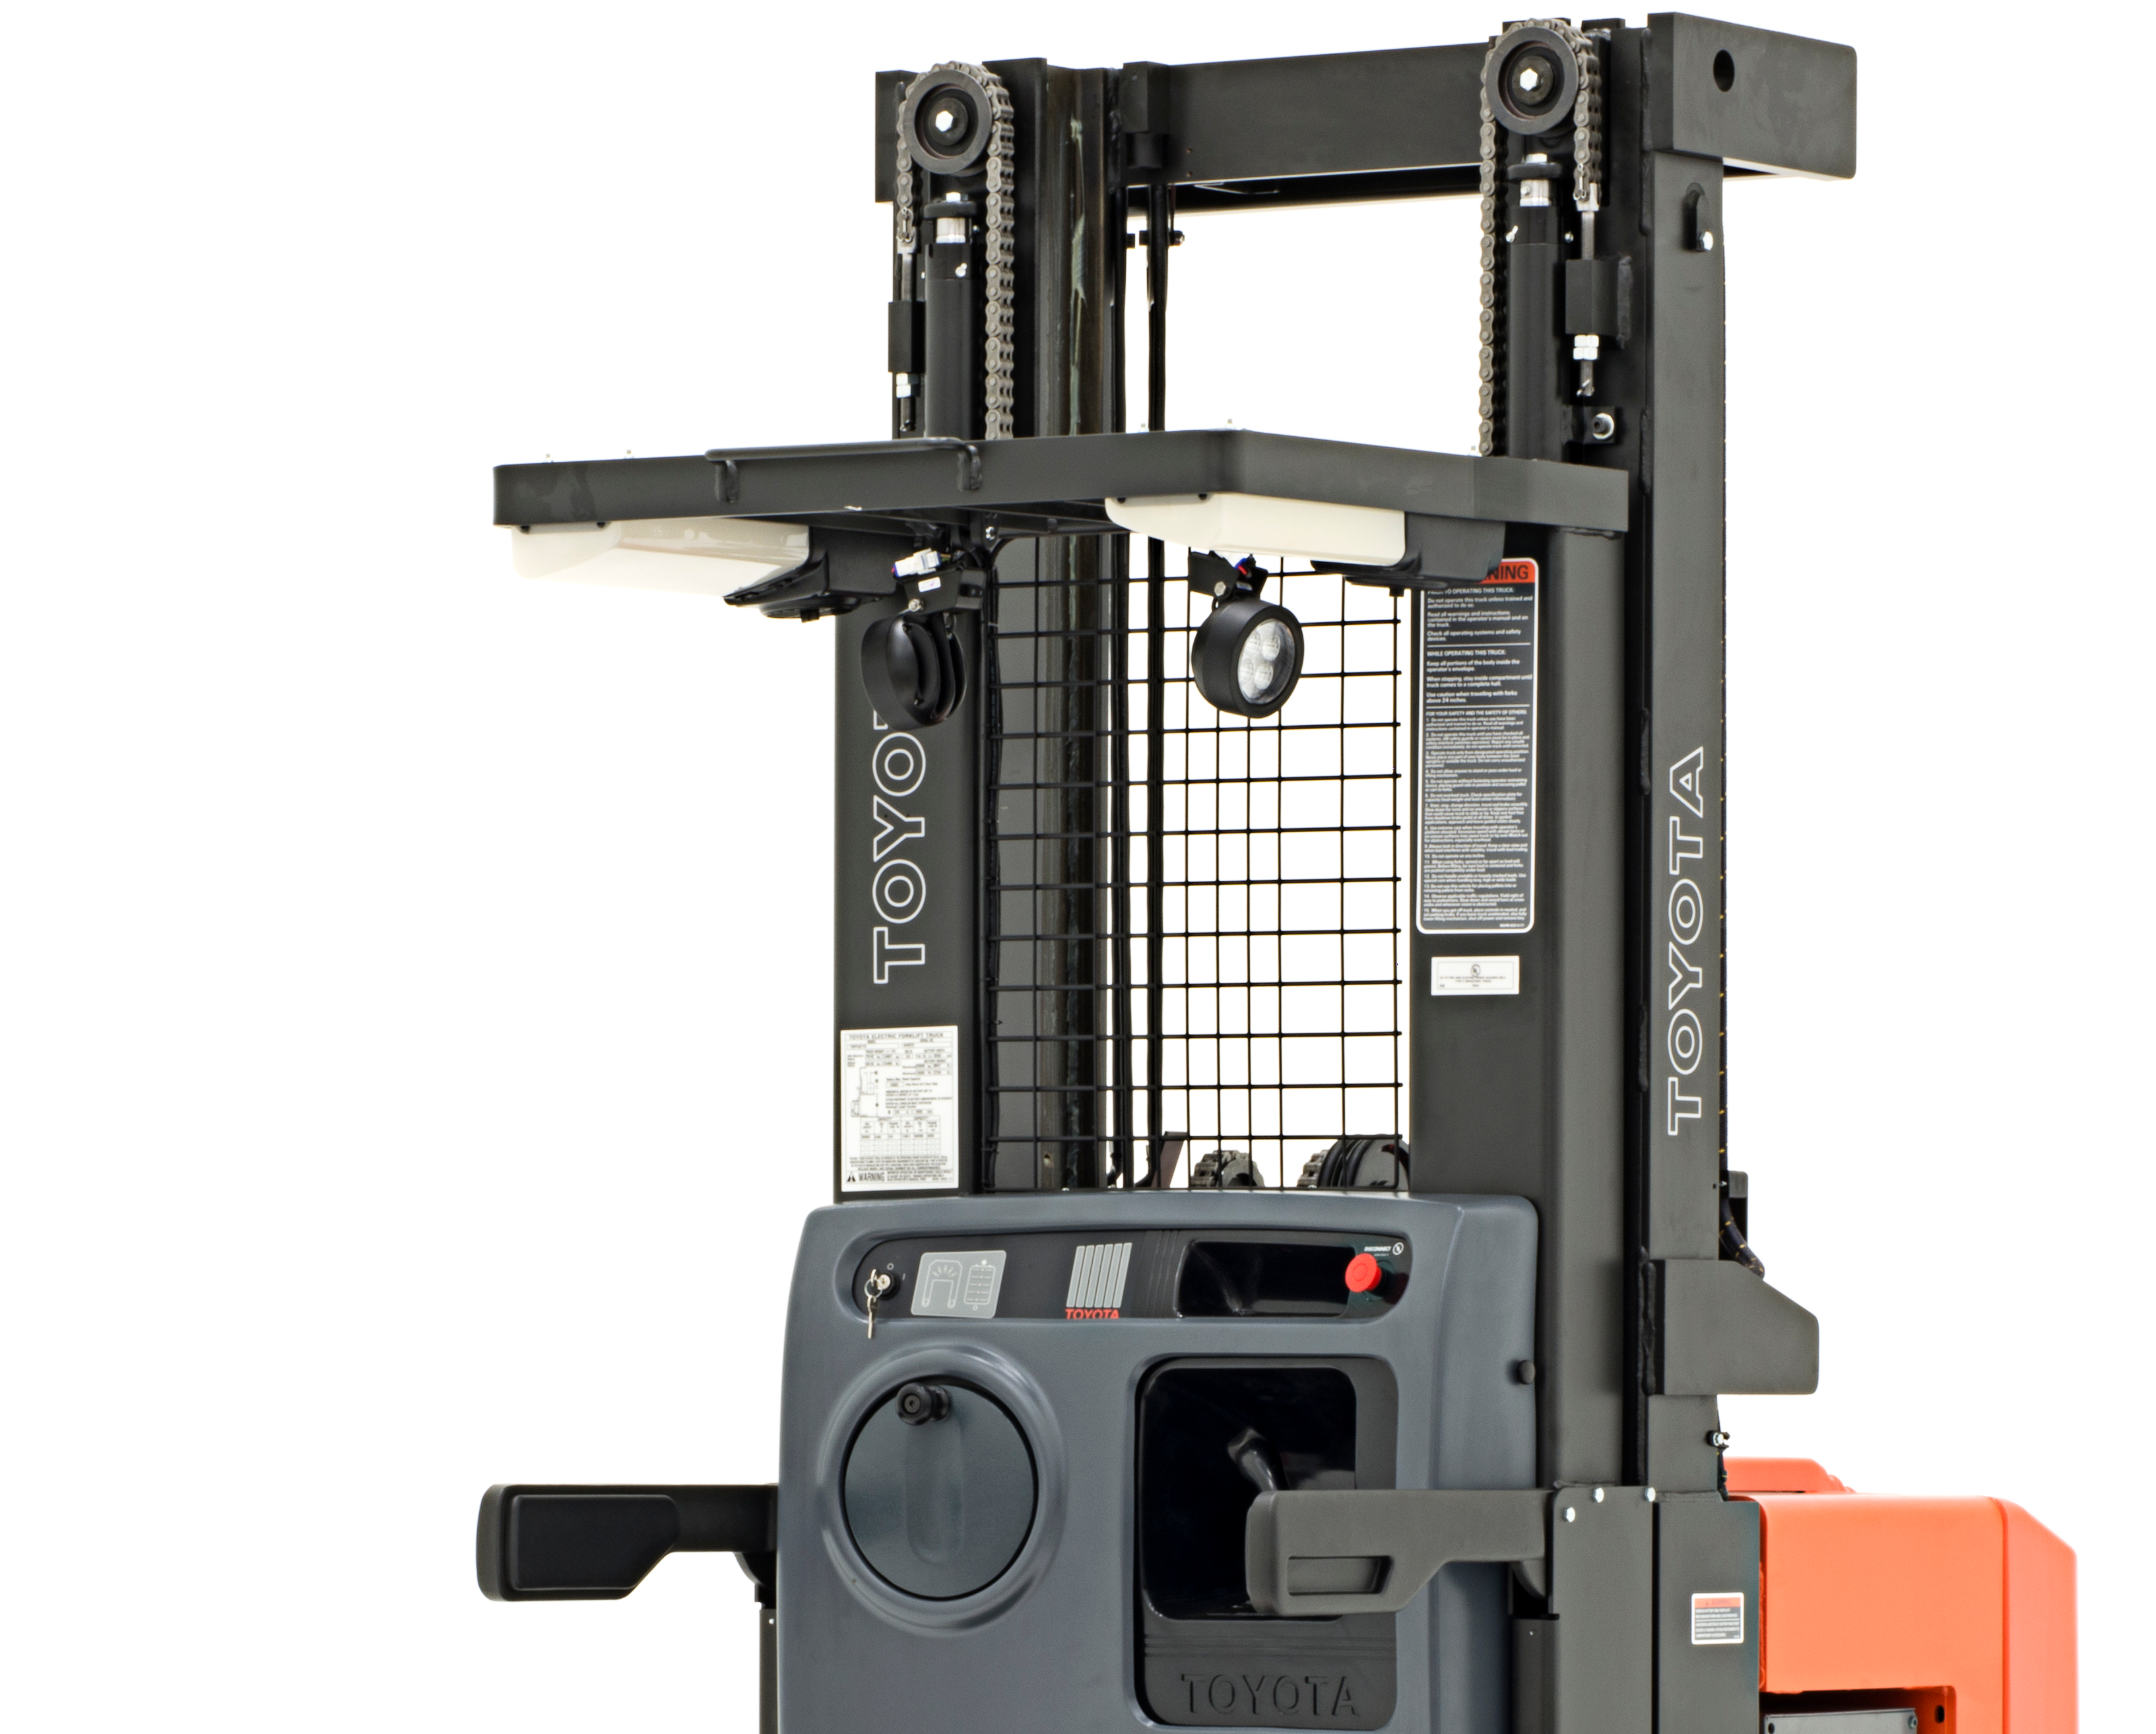 Toyota 8-Series Order Picker Forklift